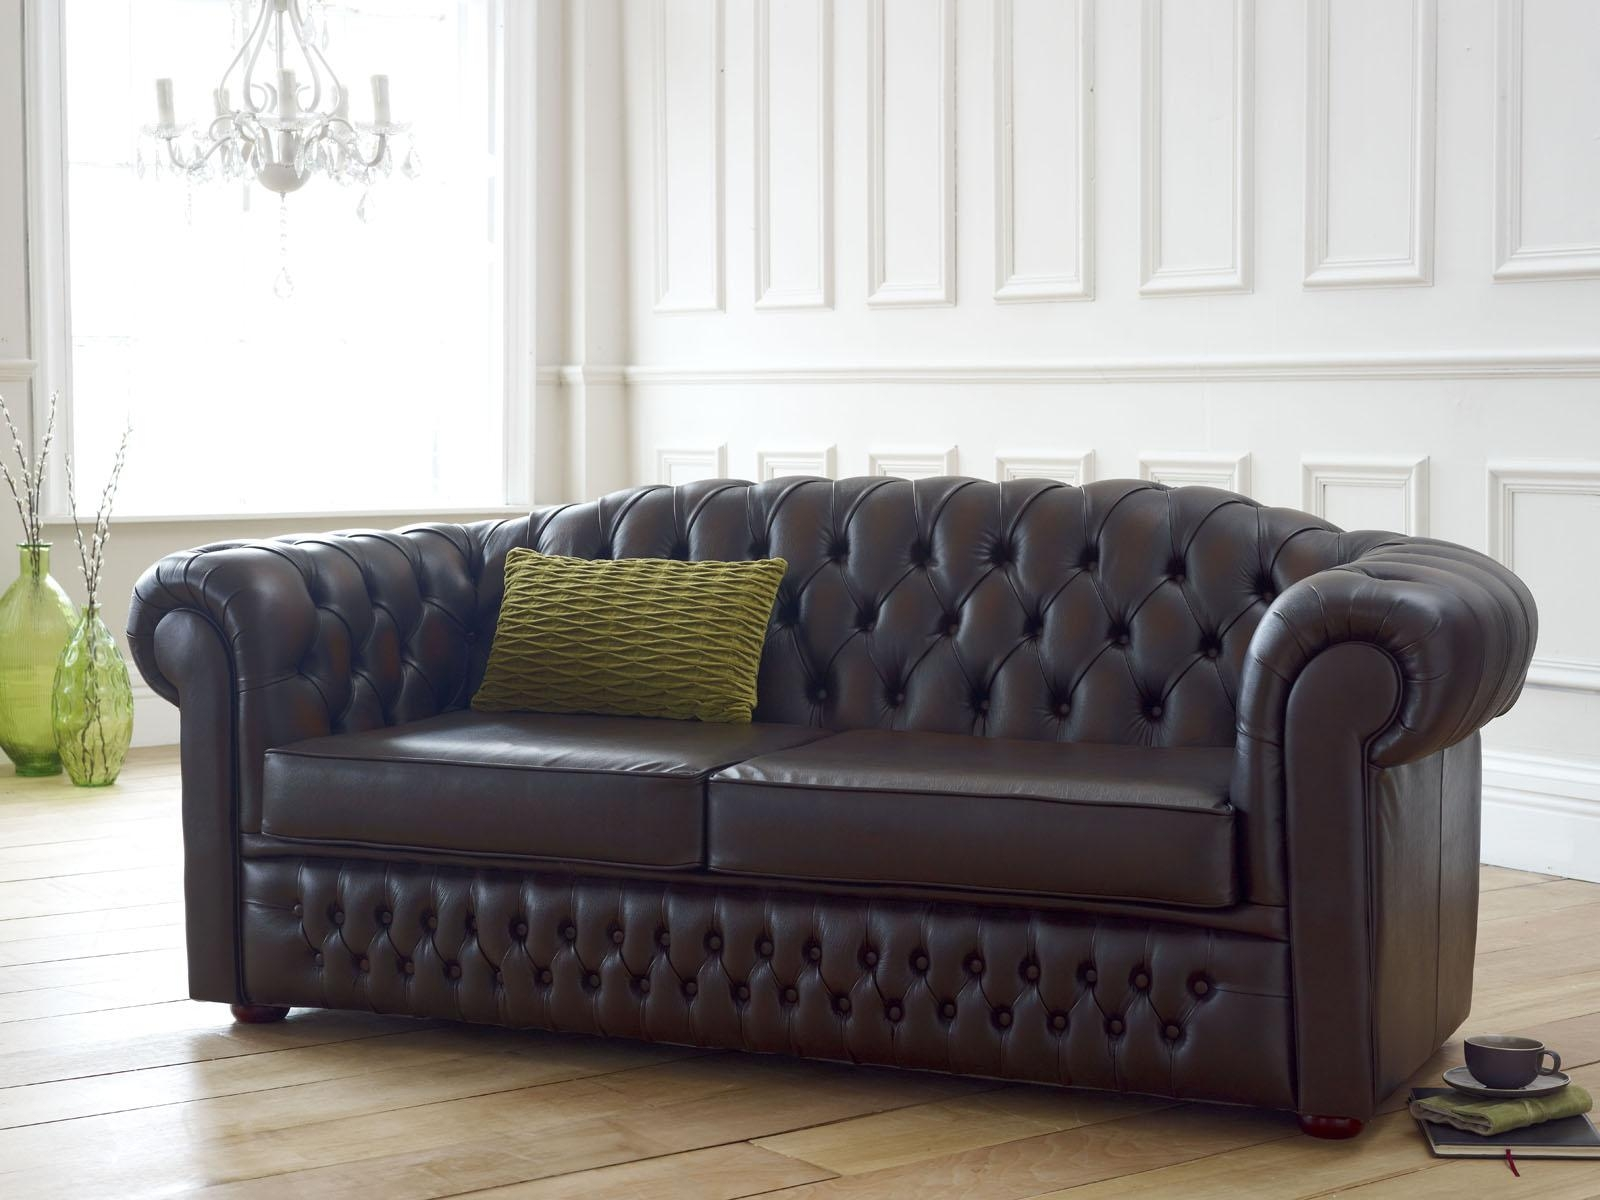 Sofas Center : Unforgettable Most Comfortable Sofa Image Throughout Most Comfortable Sofabed (View 9 of 22)